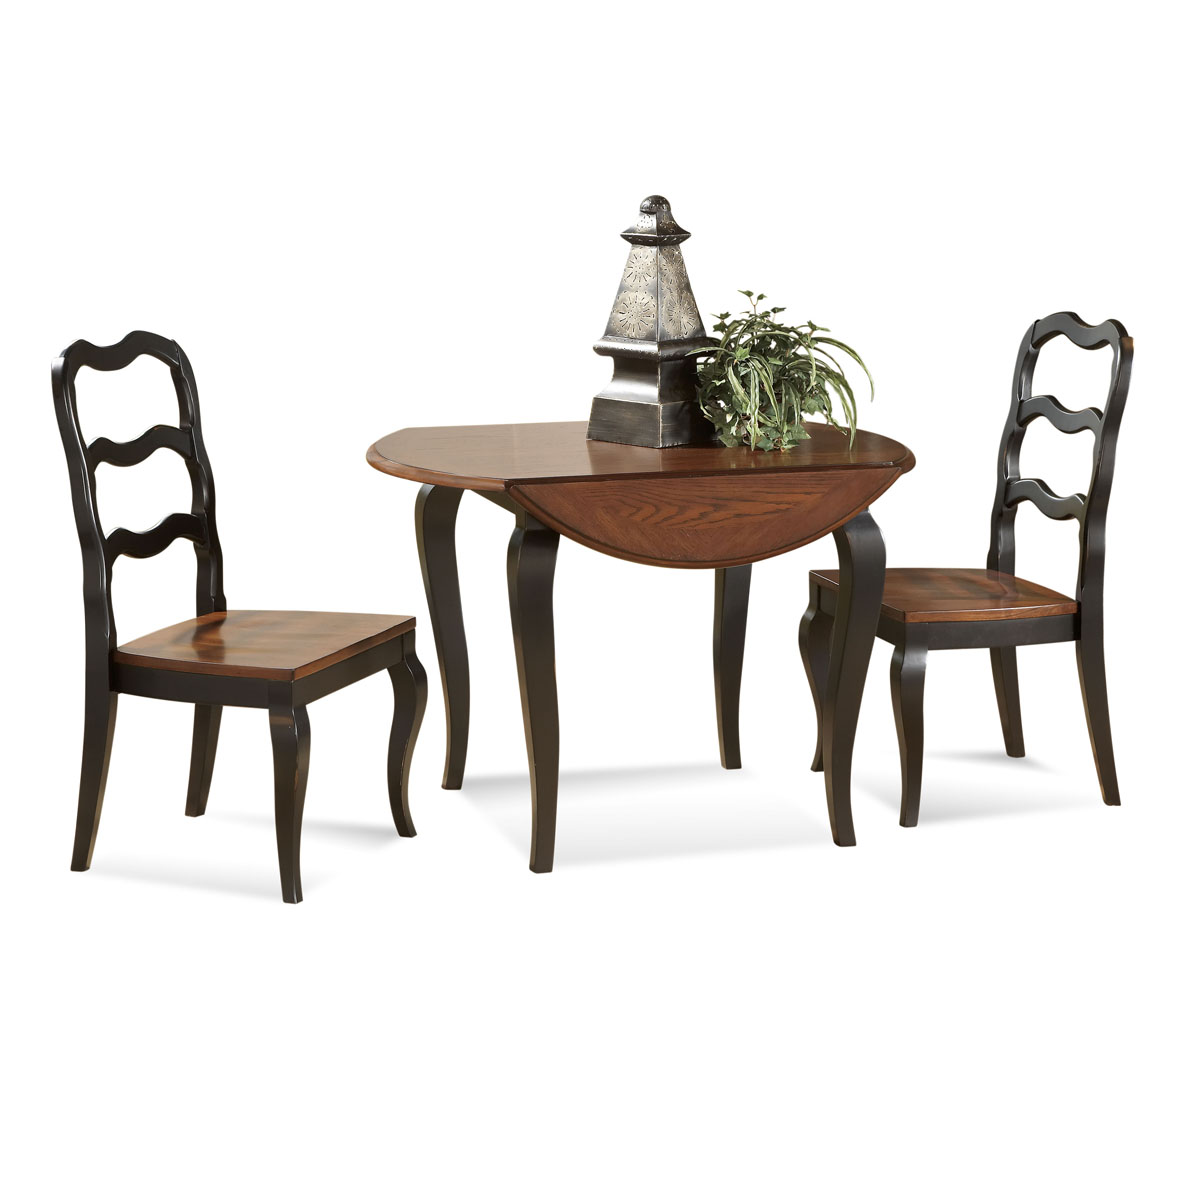 5 styles of drop leaf dining table for small spaces for Small dinner table and chairs